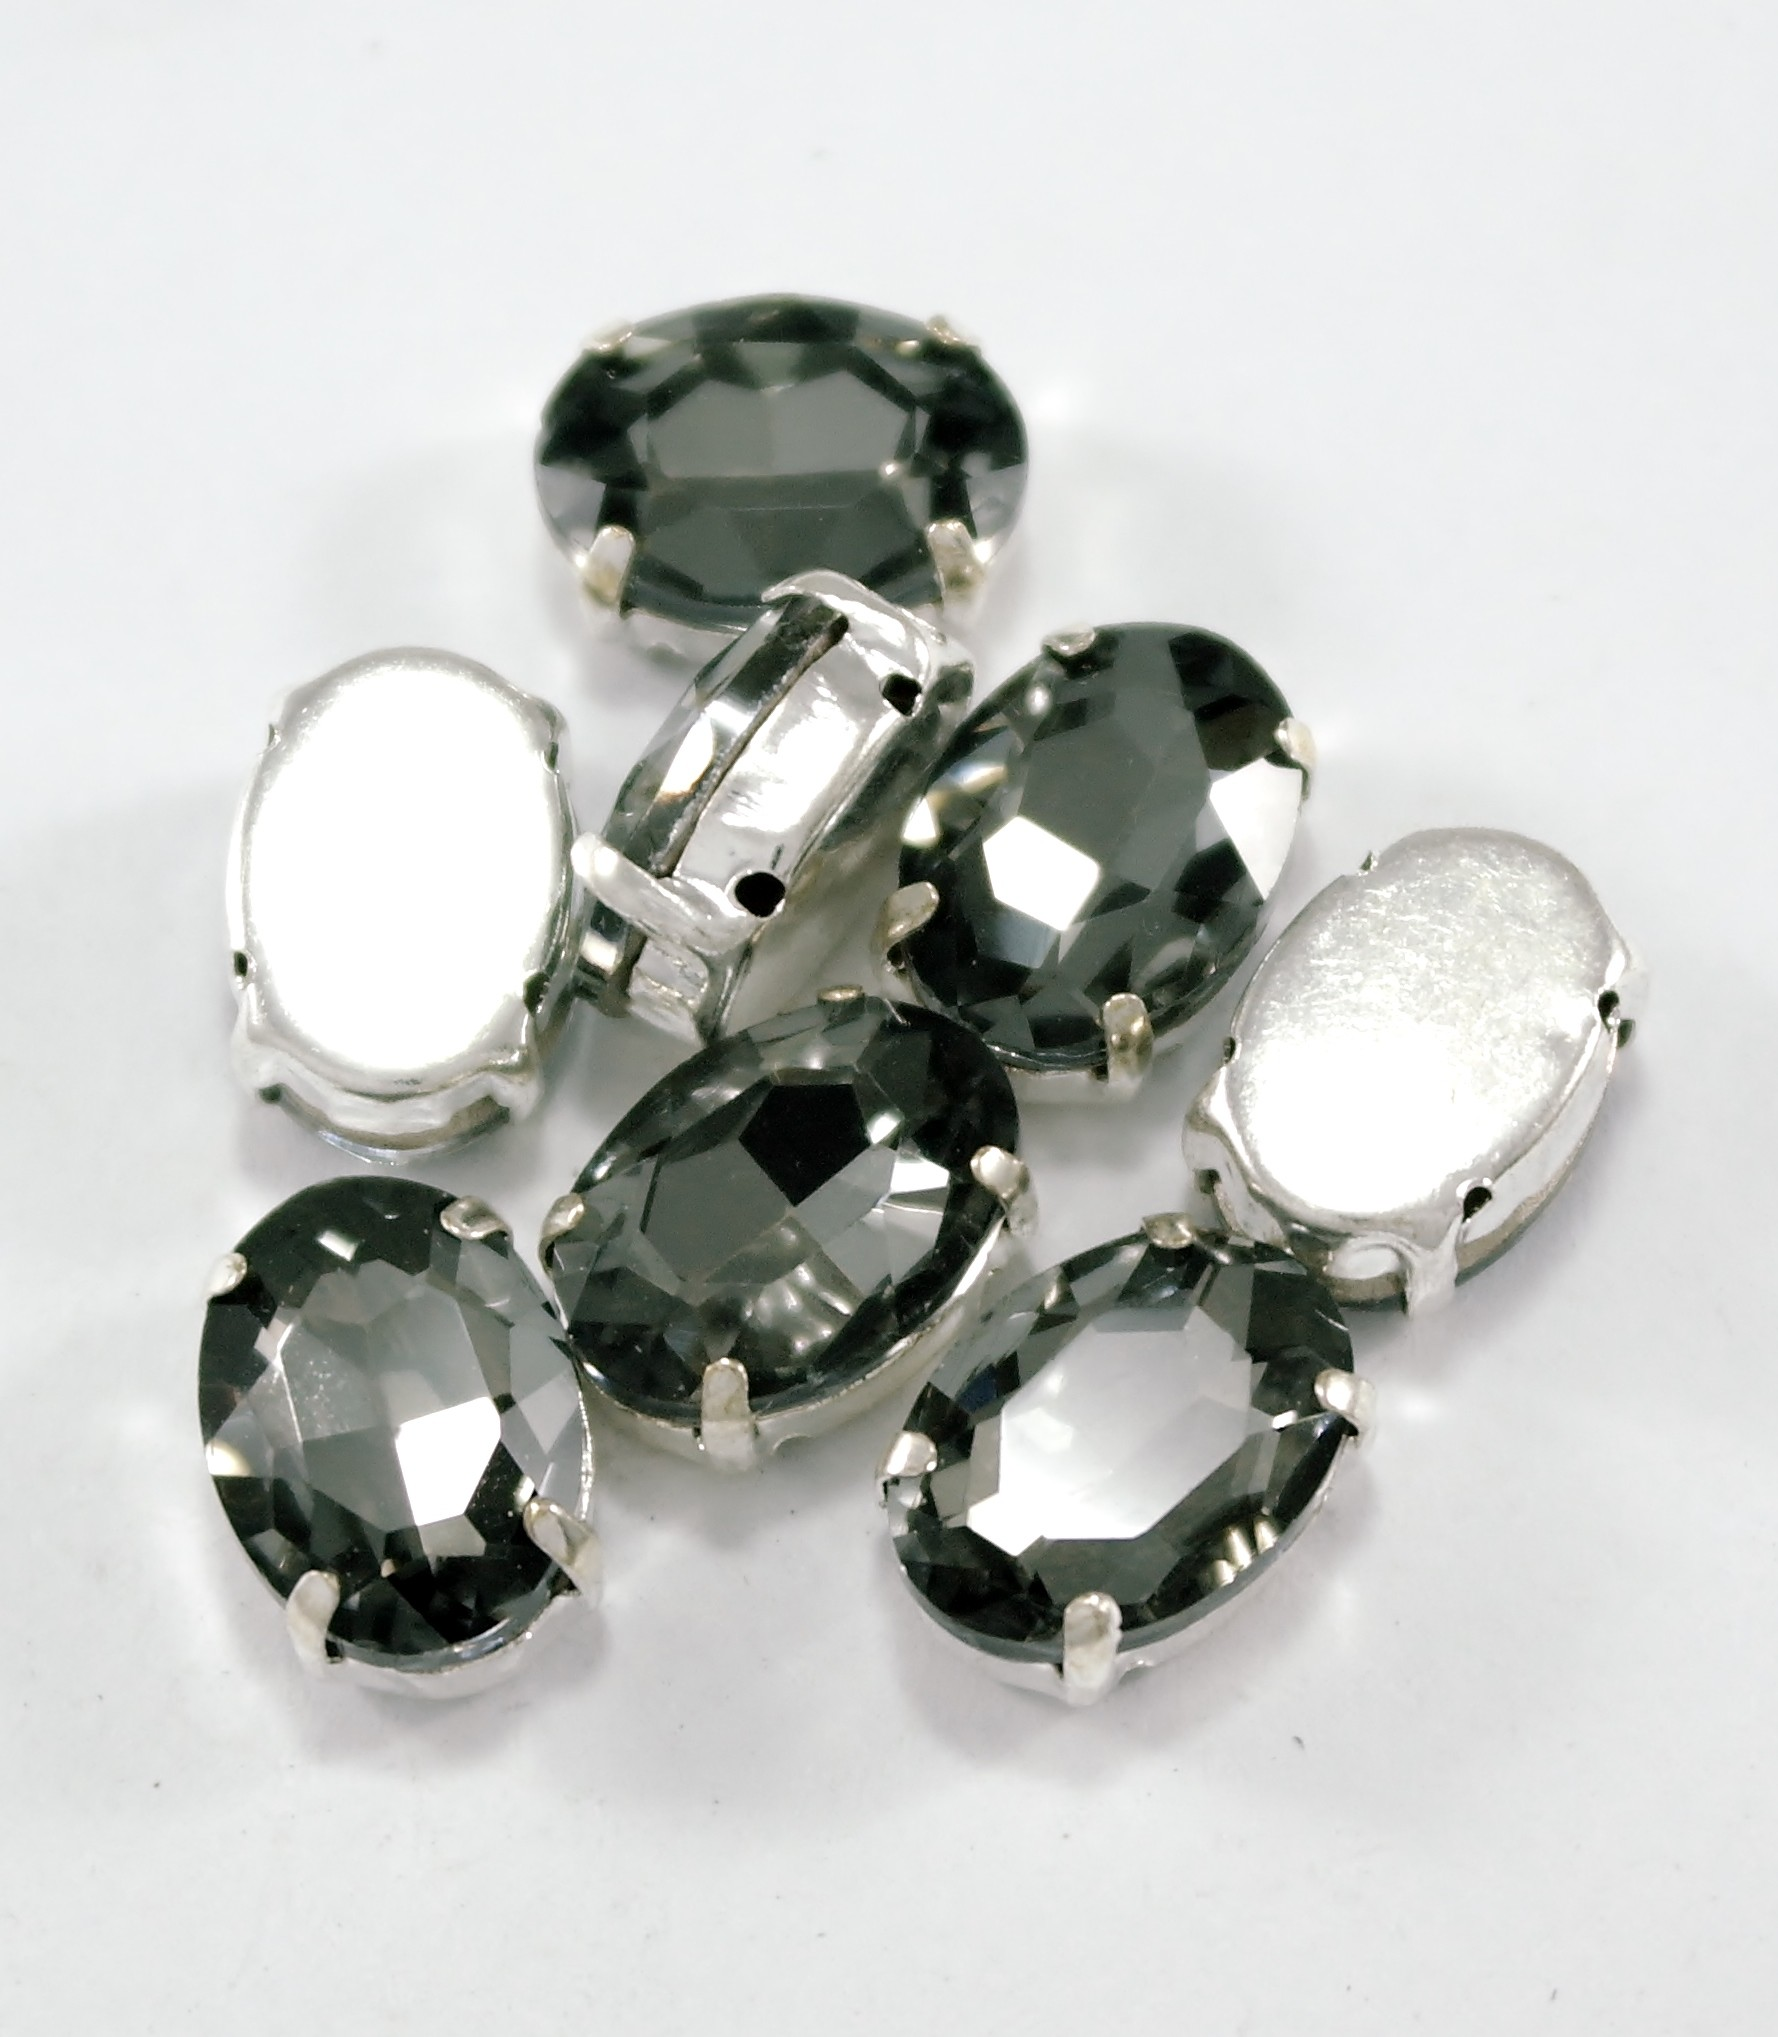 GLASS BEADS - BLACK DIAMOND OVAL (O2)